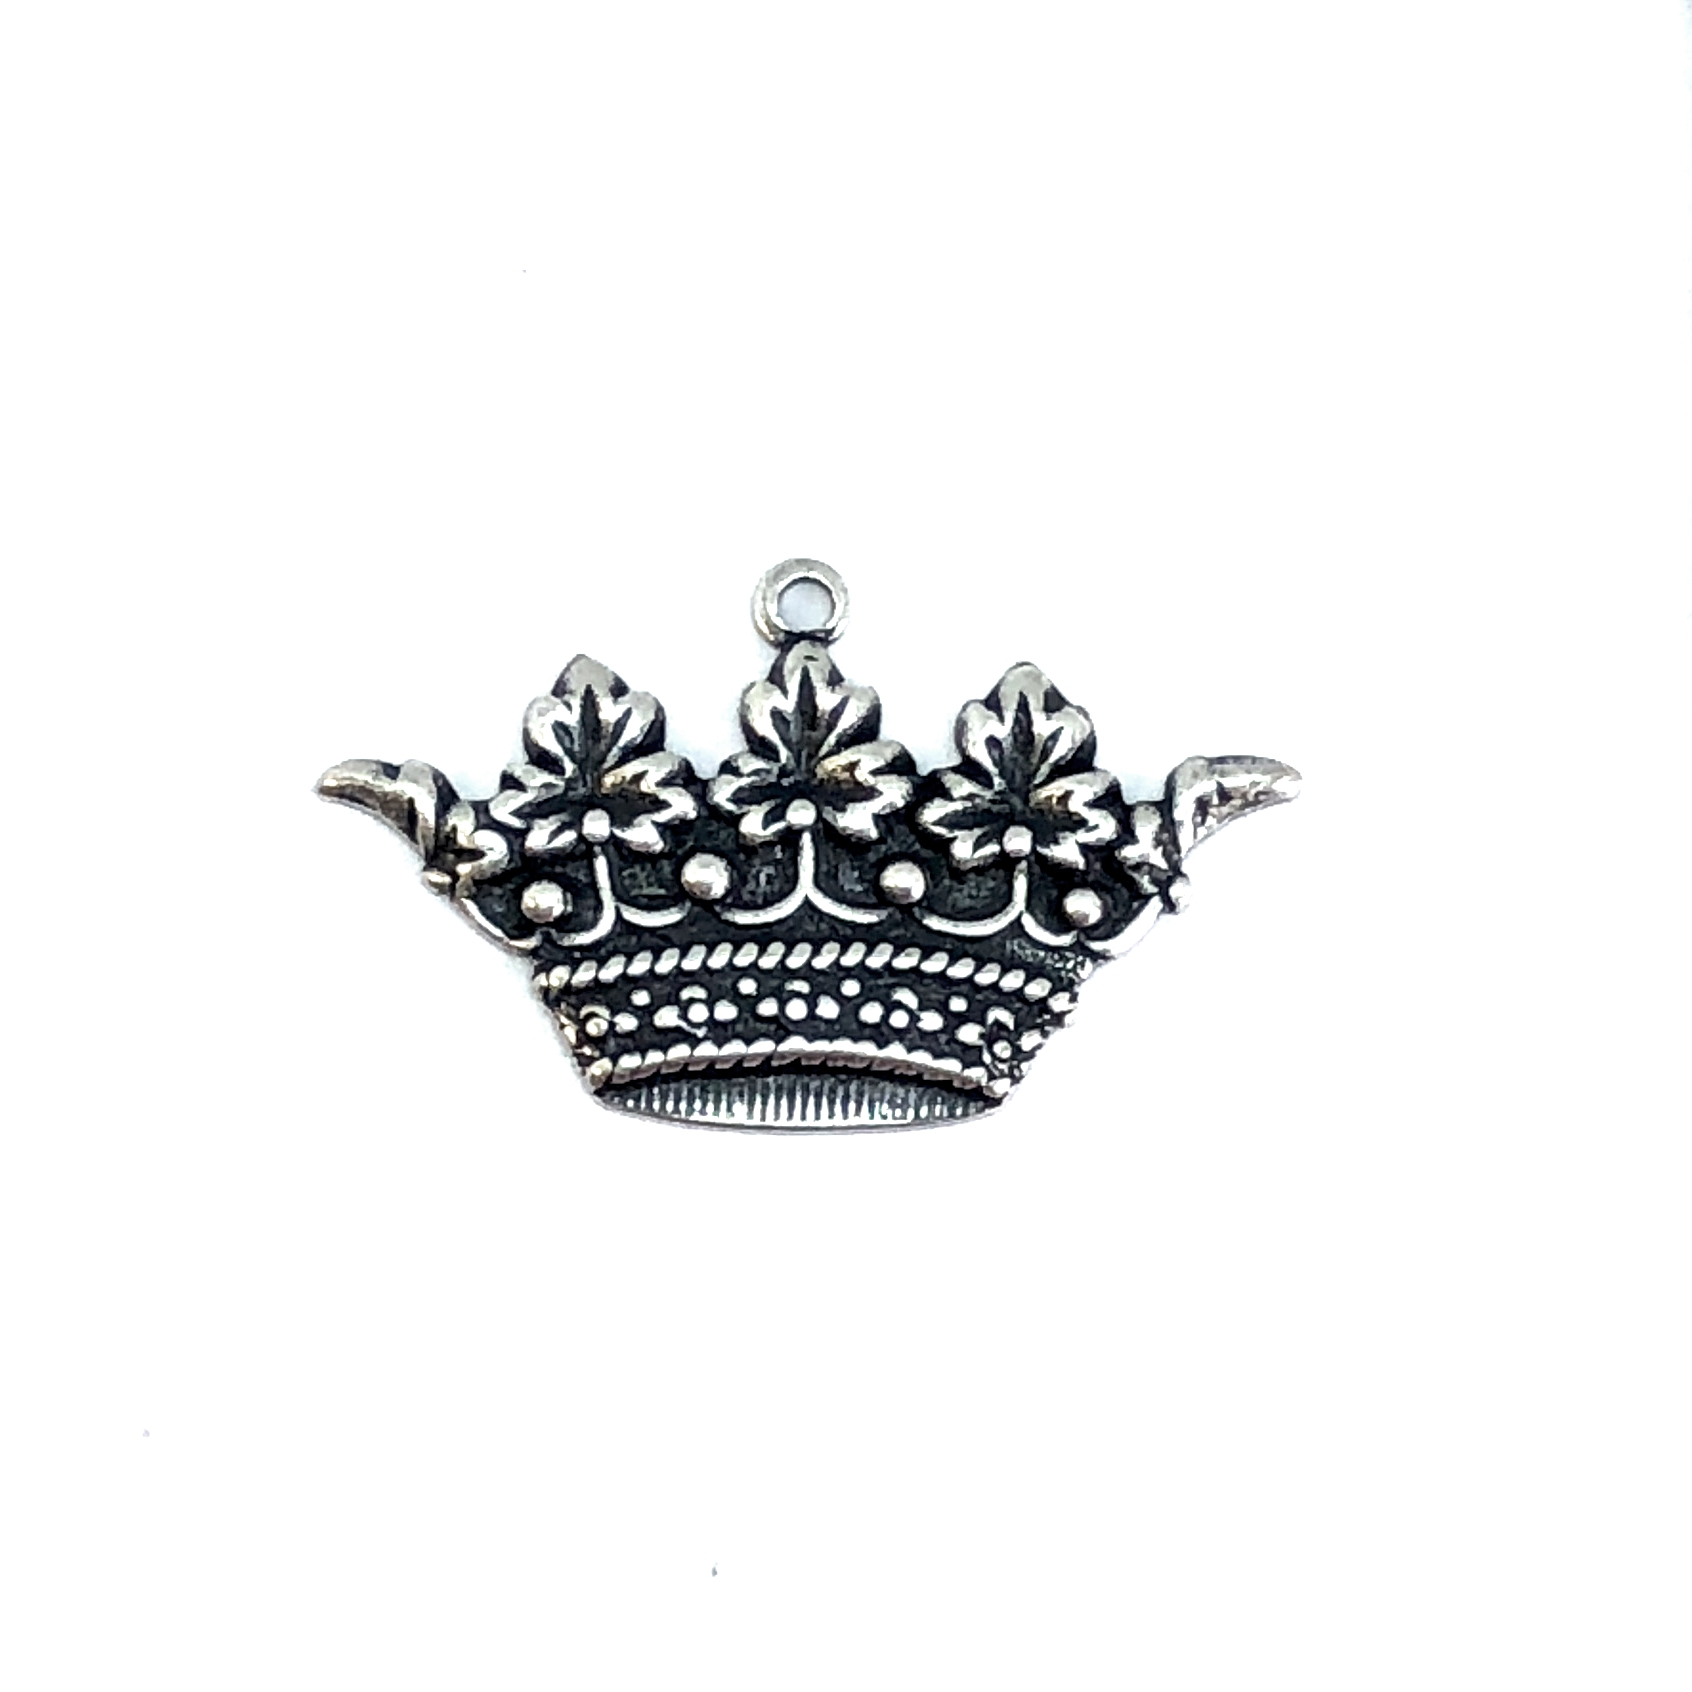 Brass Crown Charm, Silverware Silver Plate, 06112, charm bracelets, jewelry making supplies, vintage jewelry supplies, crown charms, antique silver, bracelet making supplies, US made, Bsue Boutiques, nickel free